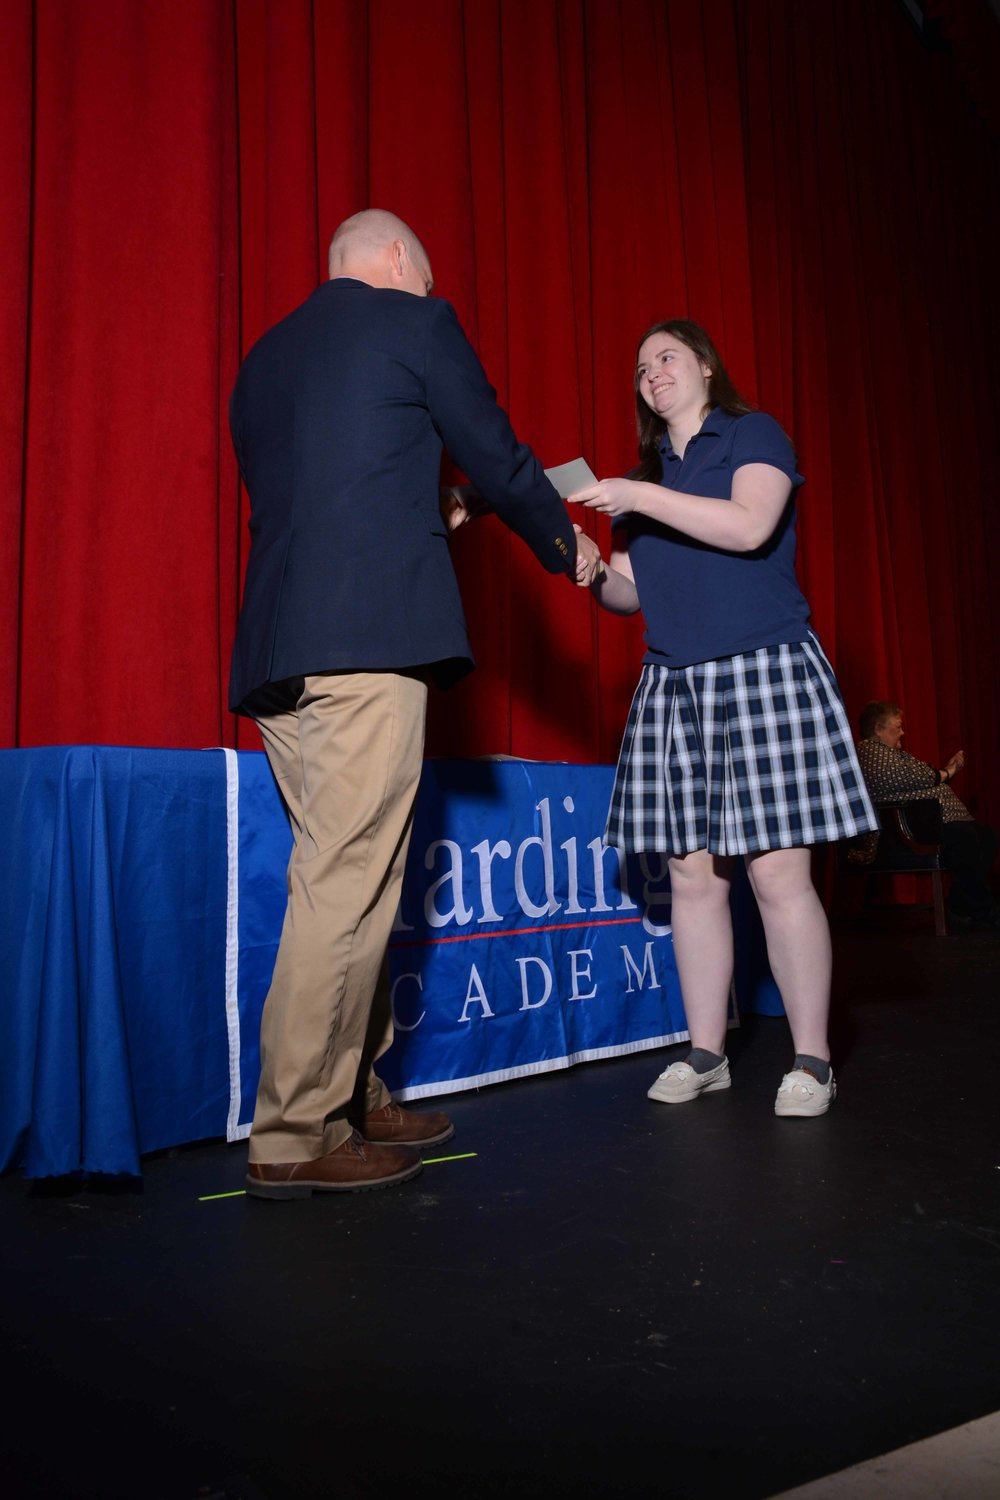 April25 AcademicAwards40.jpg